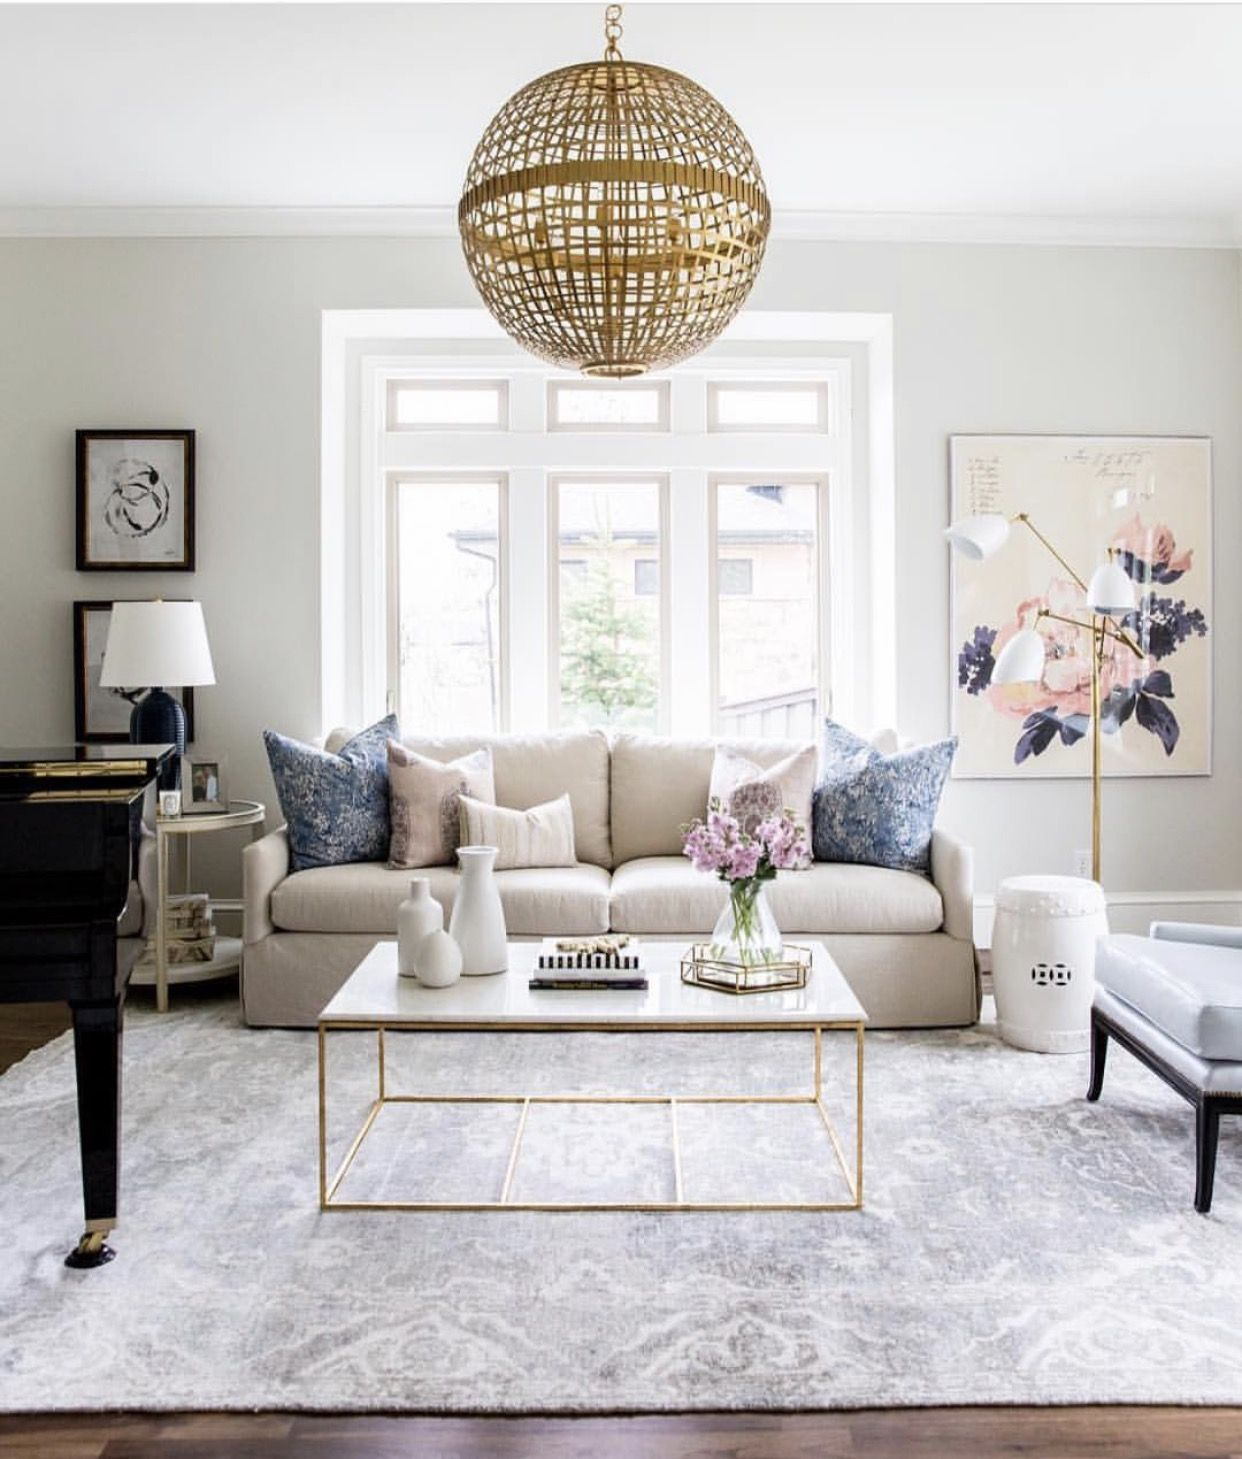 Living Room Ideas Rooms Apartments Decorating Open Es Interior House Couches Apartment